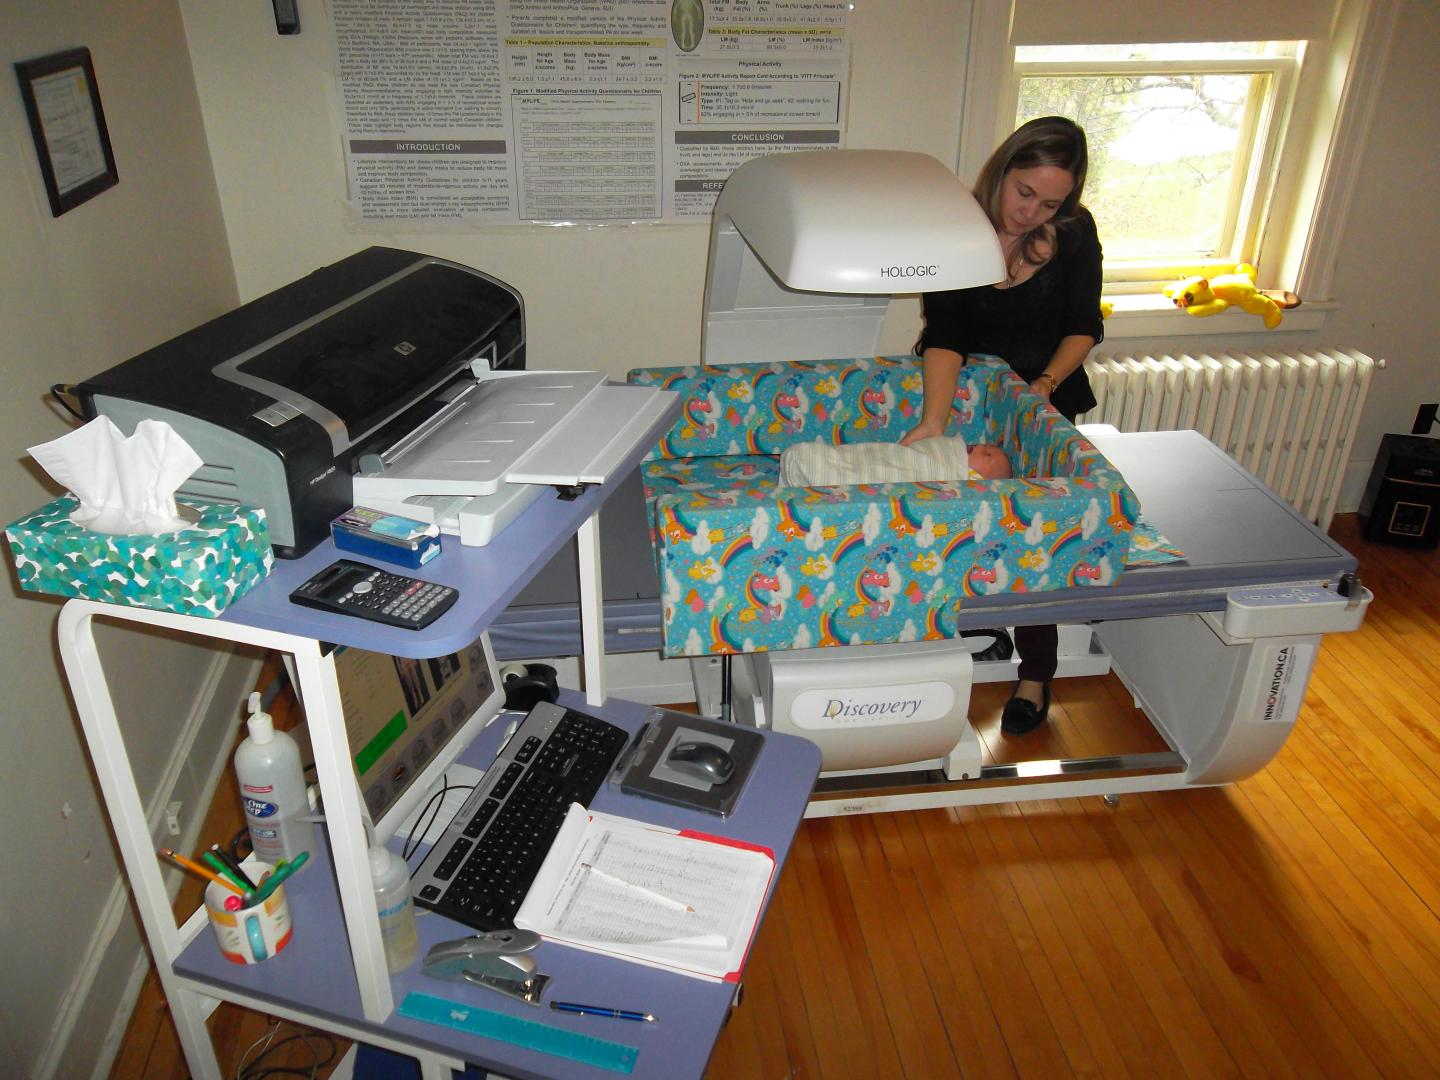 Research nurse setting up the bone densitometer to take an x-ray of an infant's muscle and bone.